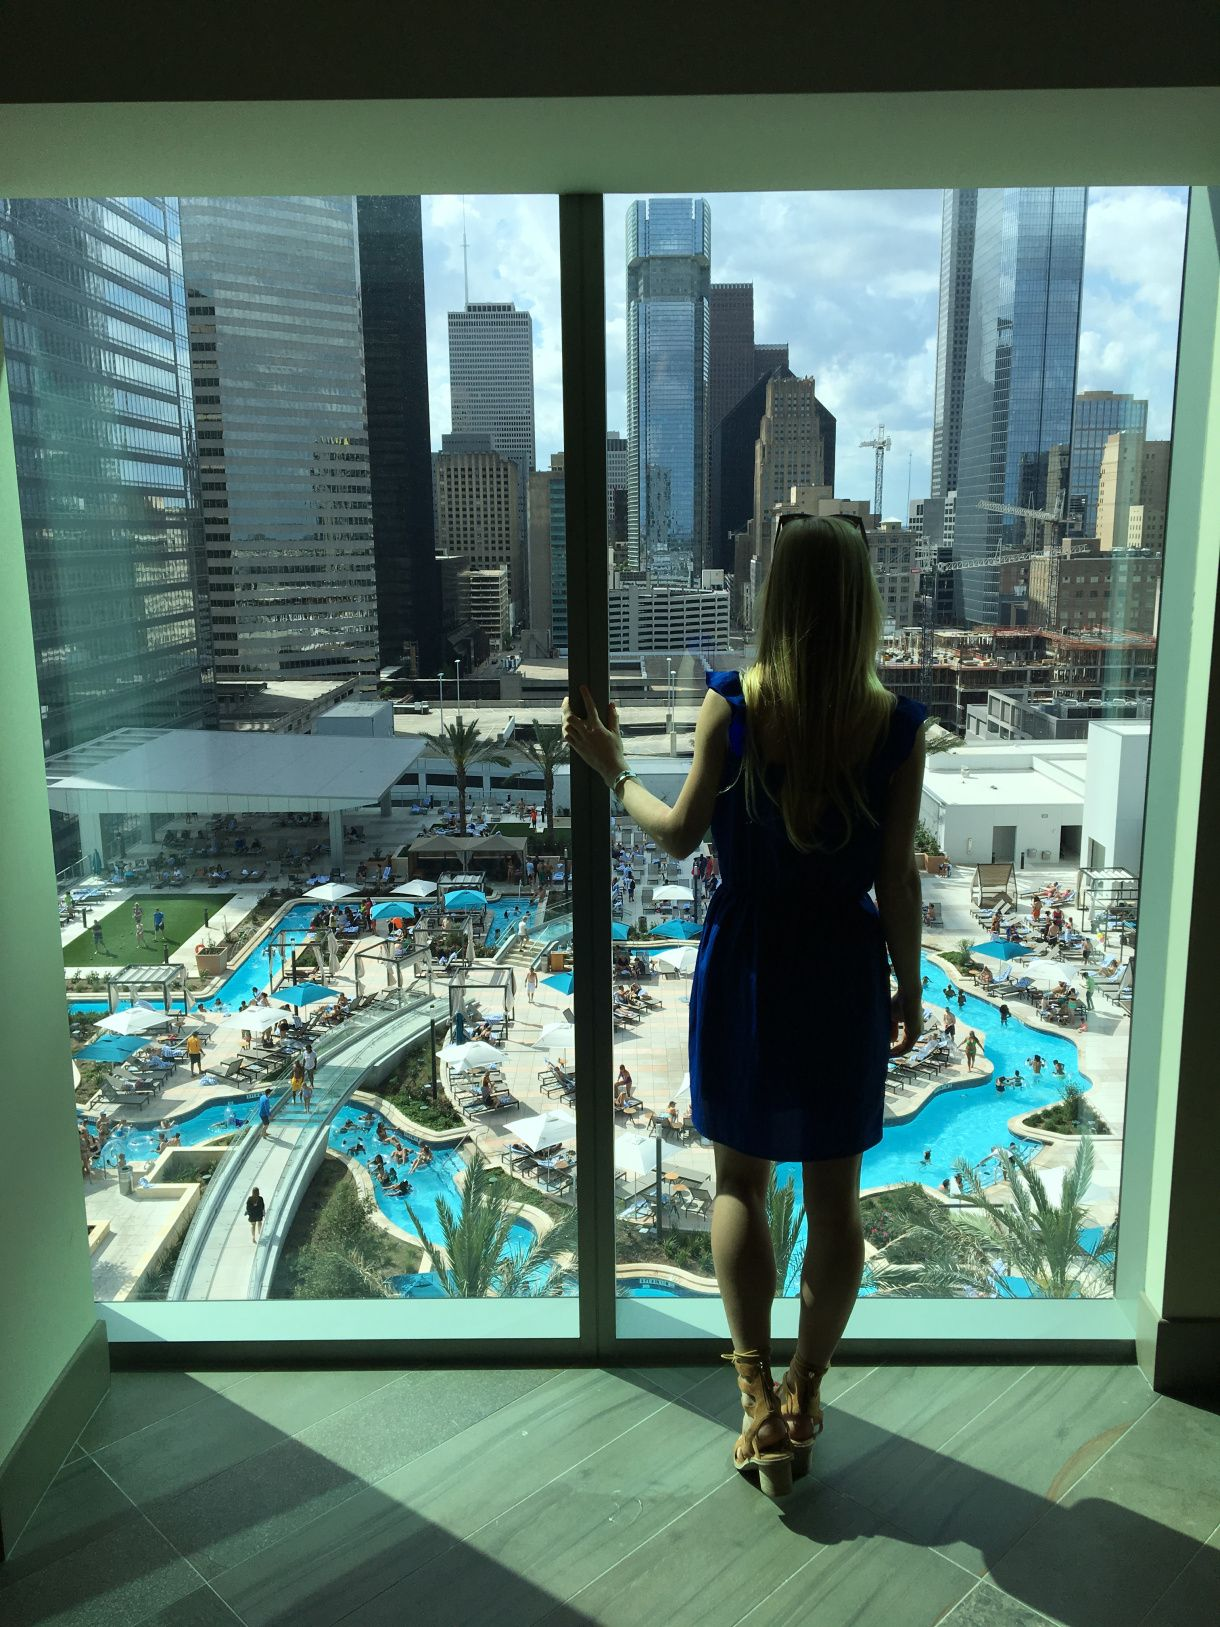 Houston Is Home To Officially The Coolest Pool In Town Texas The World I Mean Have You Seen It Houston Texas Photography Houston Hotels Downtown Houston